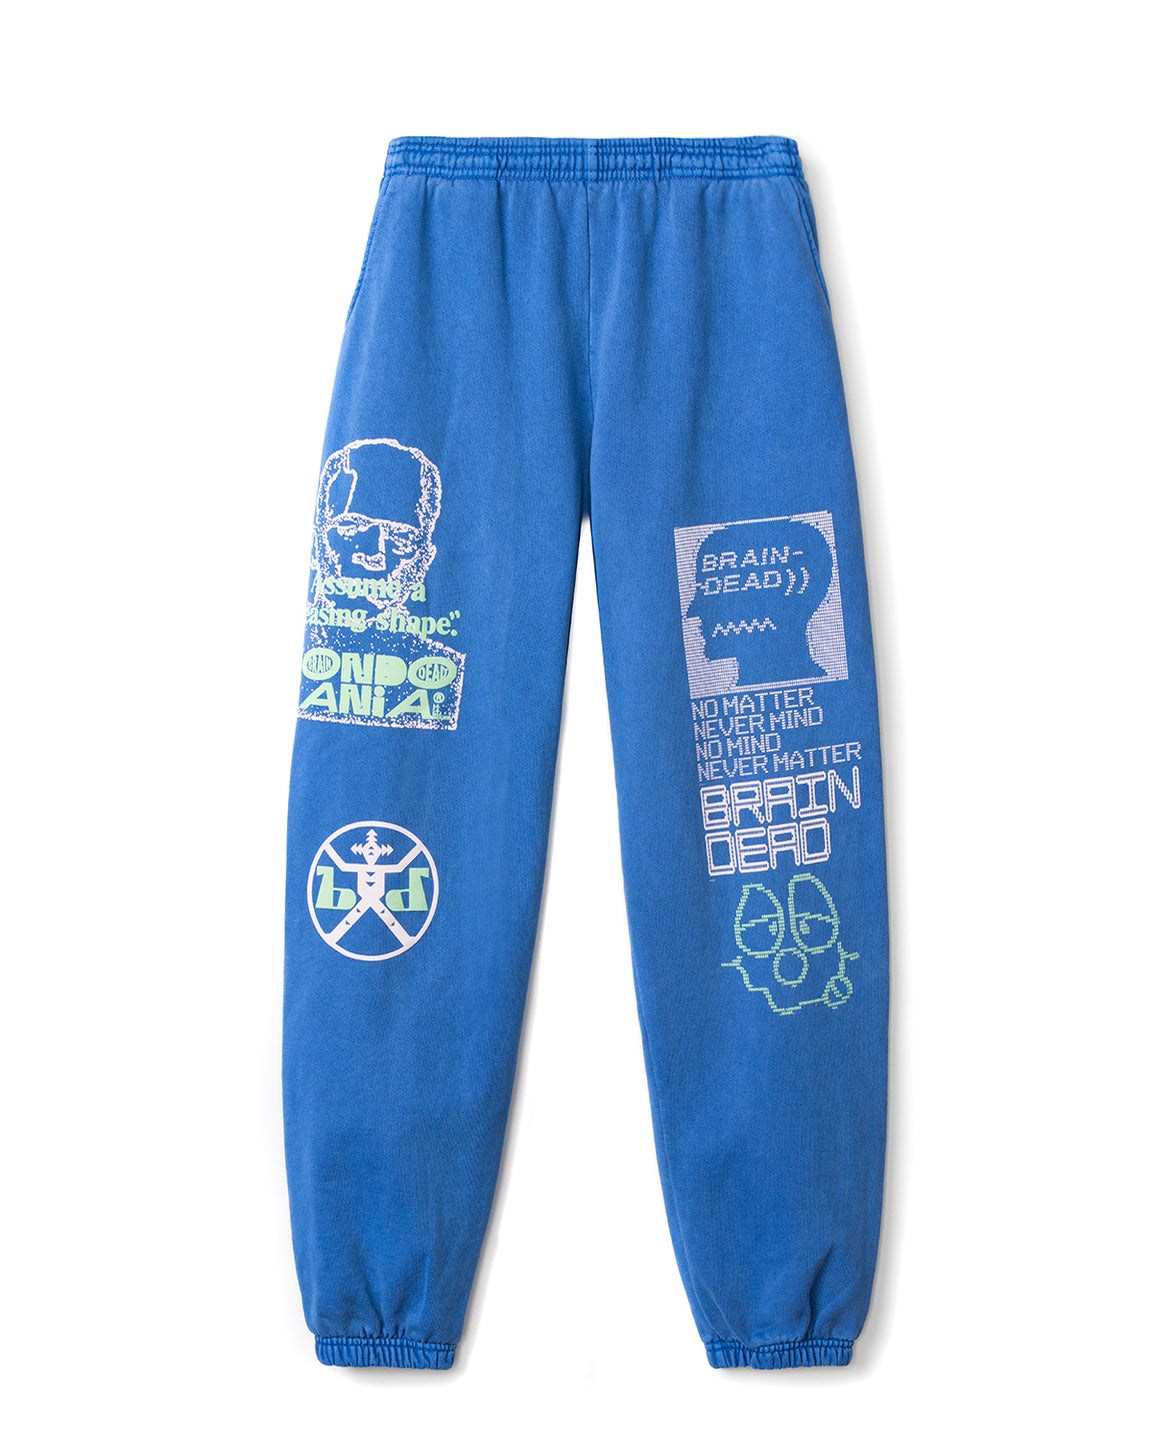 Pleasing Shape Sweatpants - Washed Blue